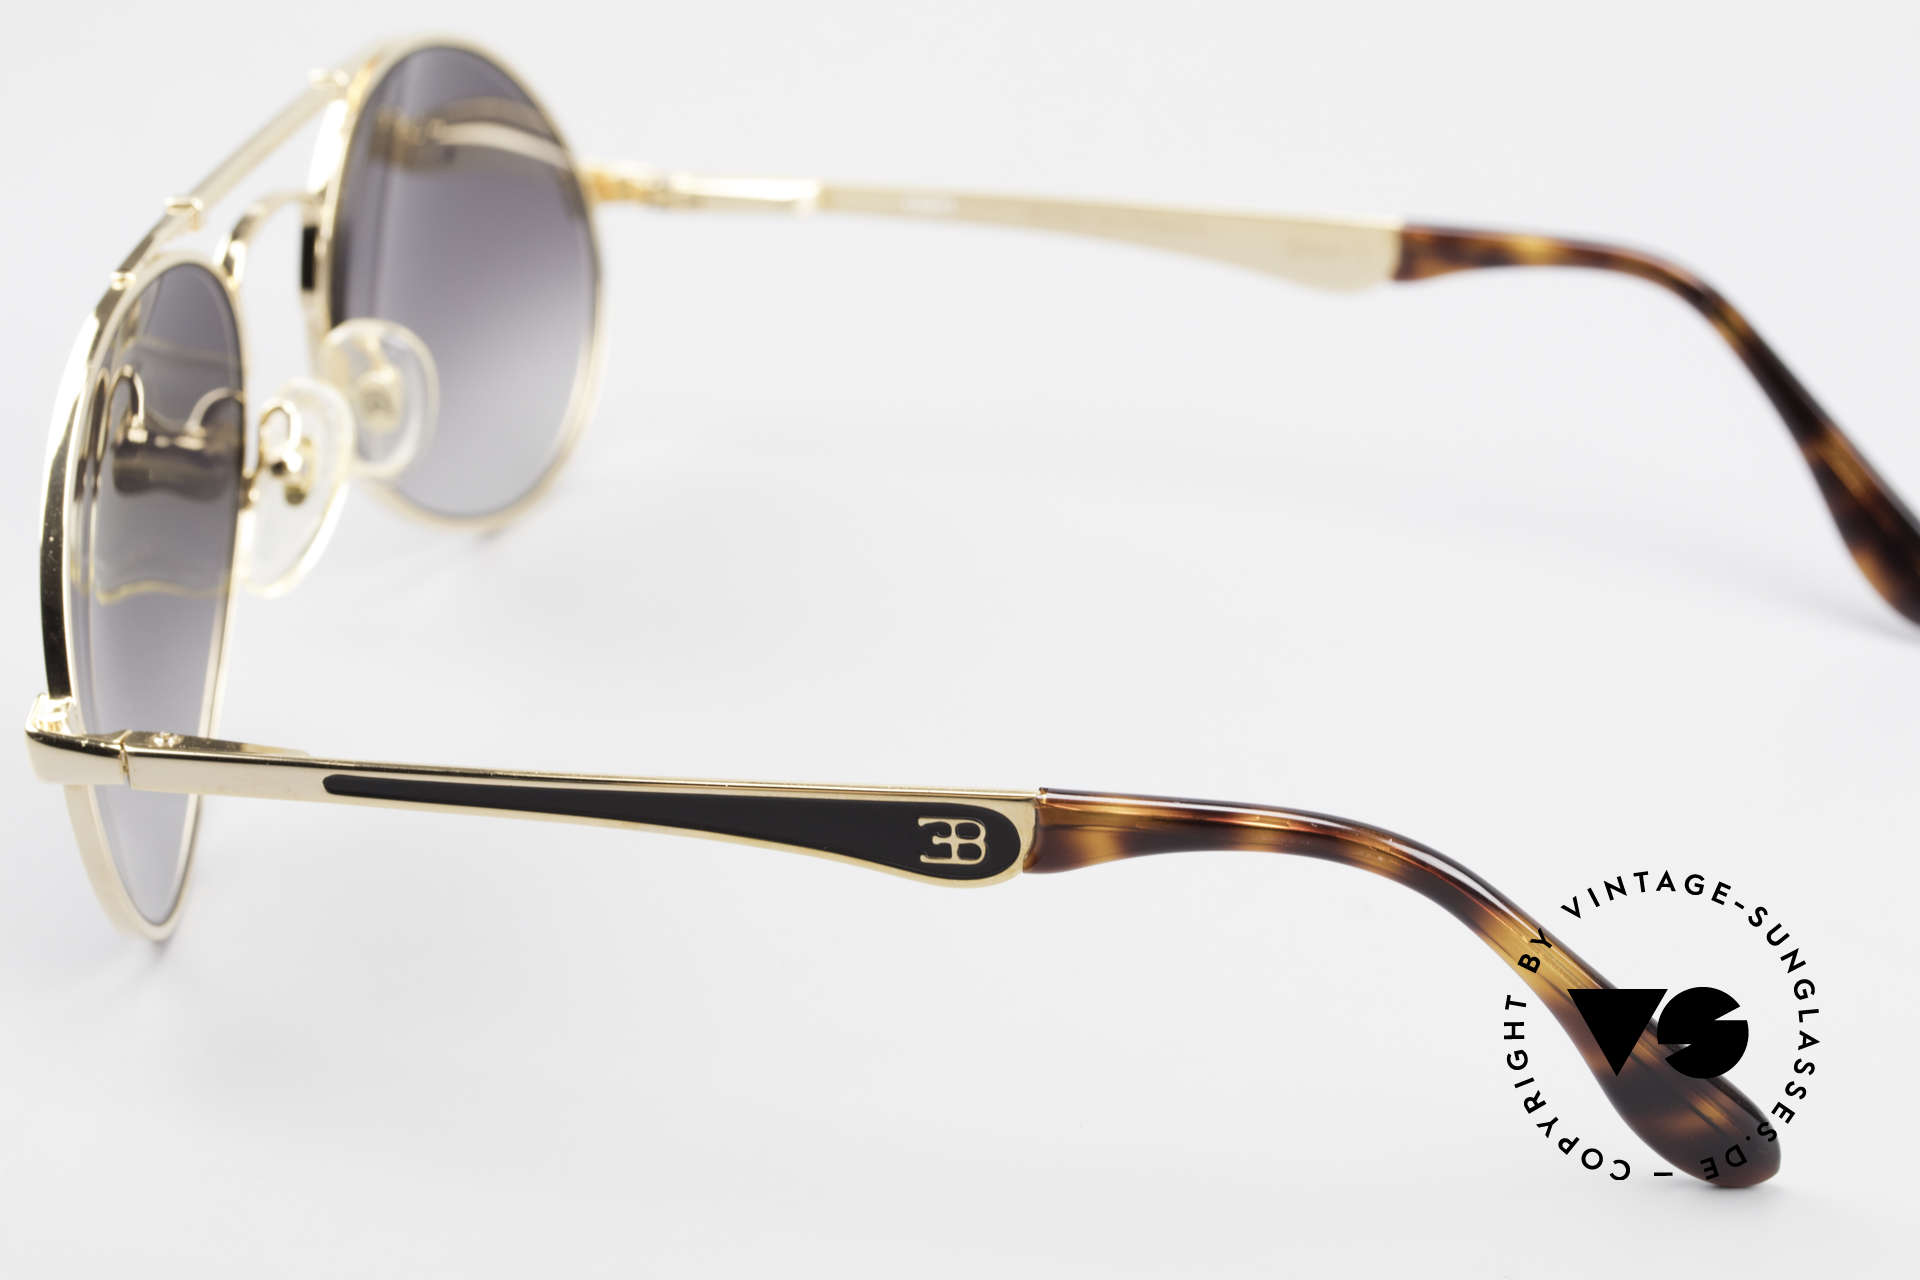 Bugatti 11911 80's Luxury Men's Sunglasses, bridge is shaped like a leaf spring (gold-plated), Made for Men